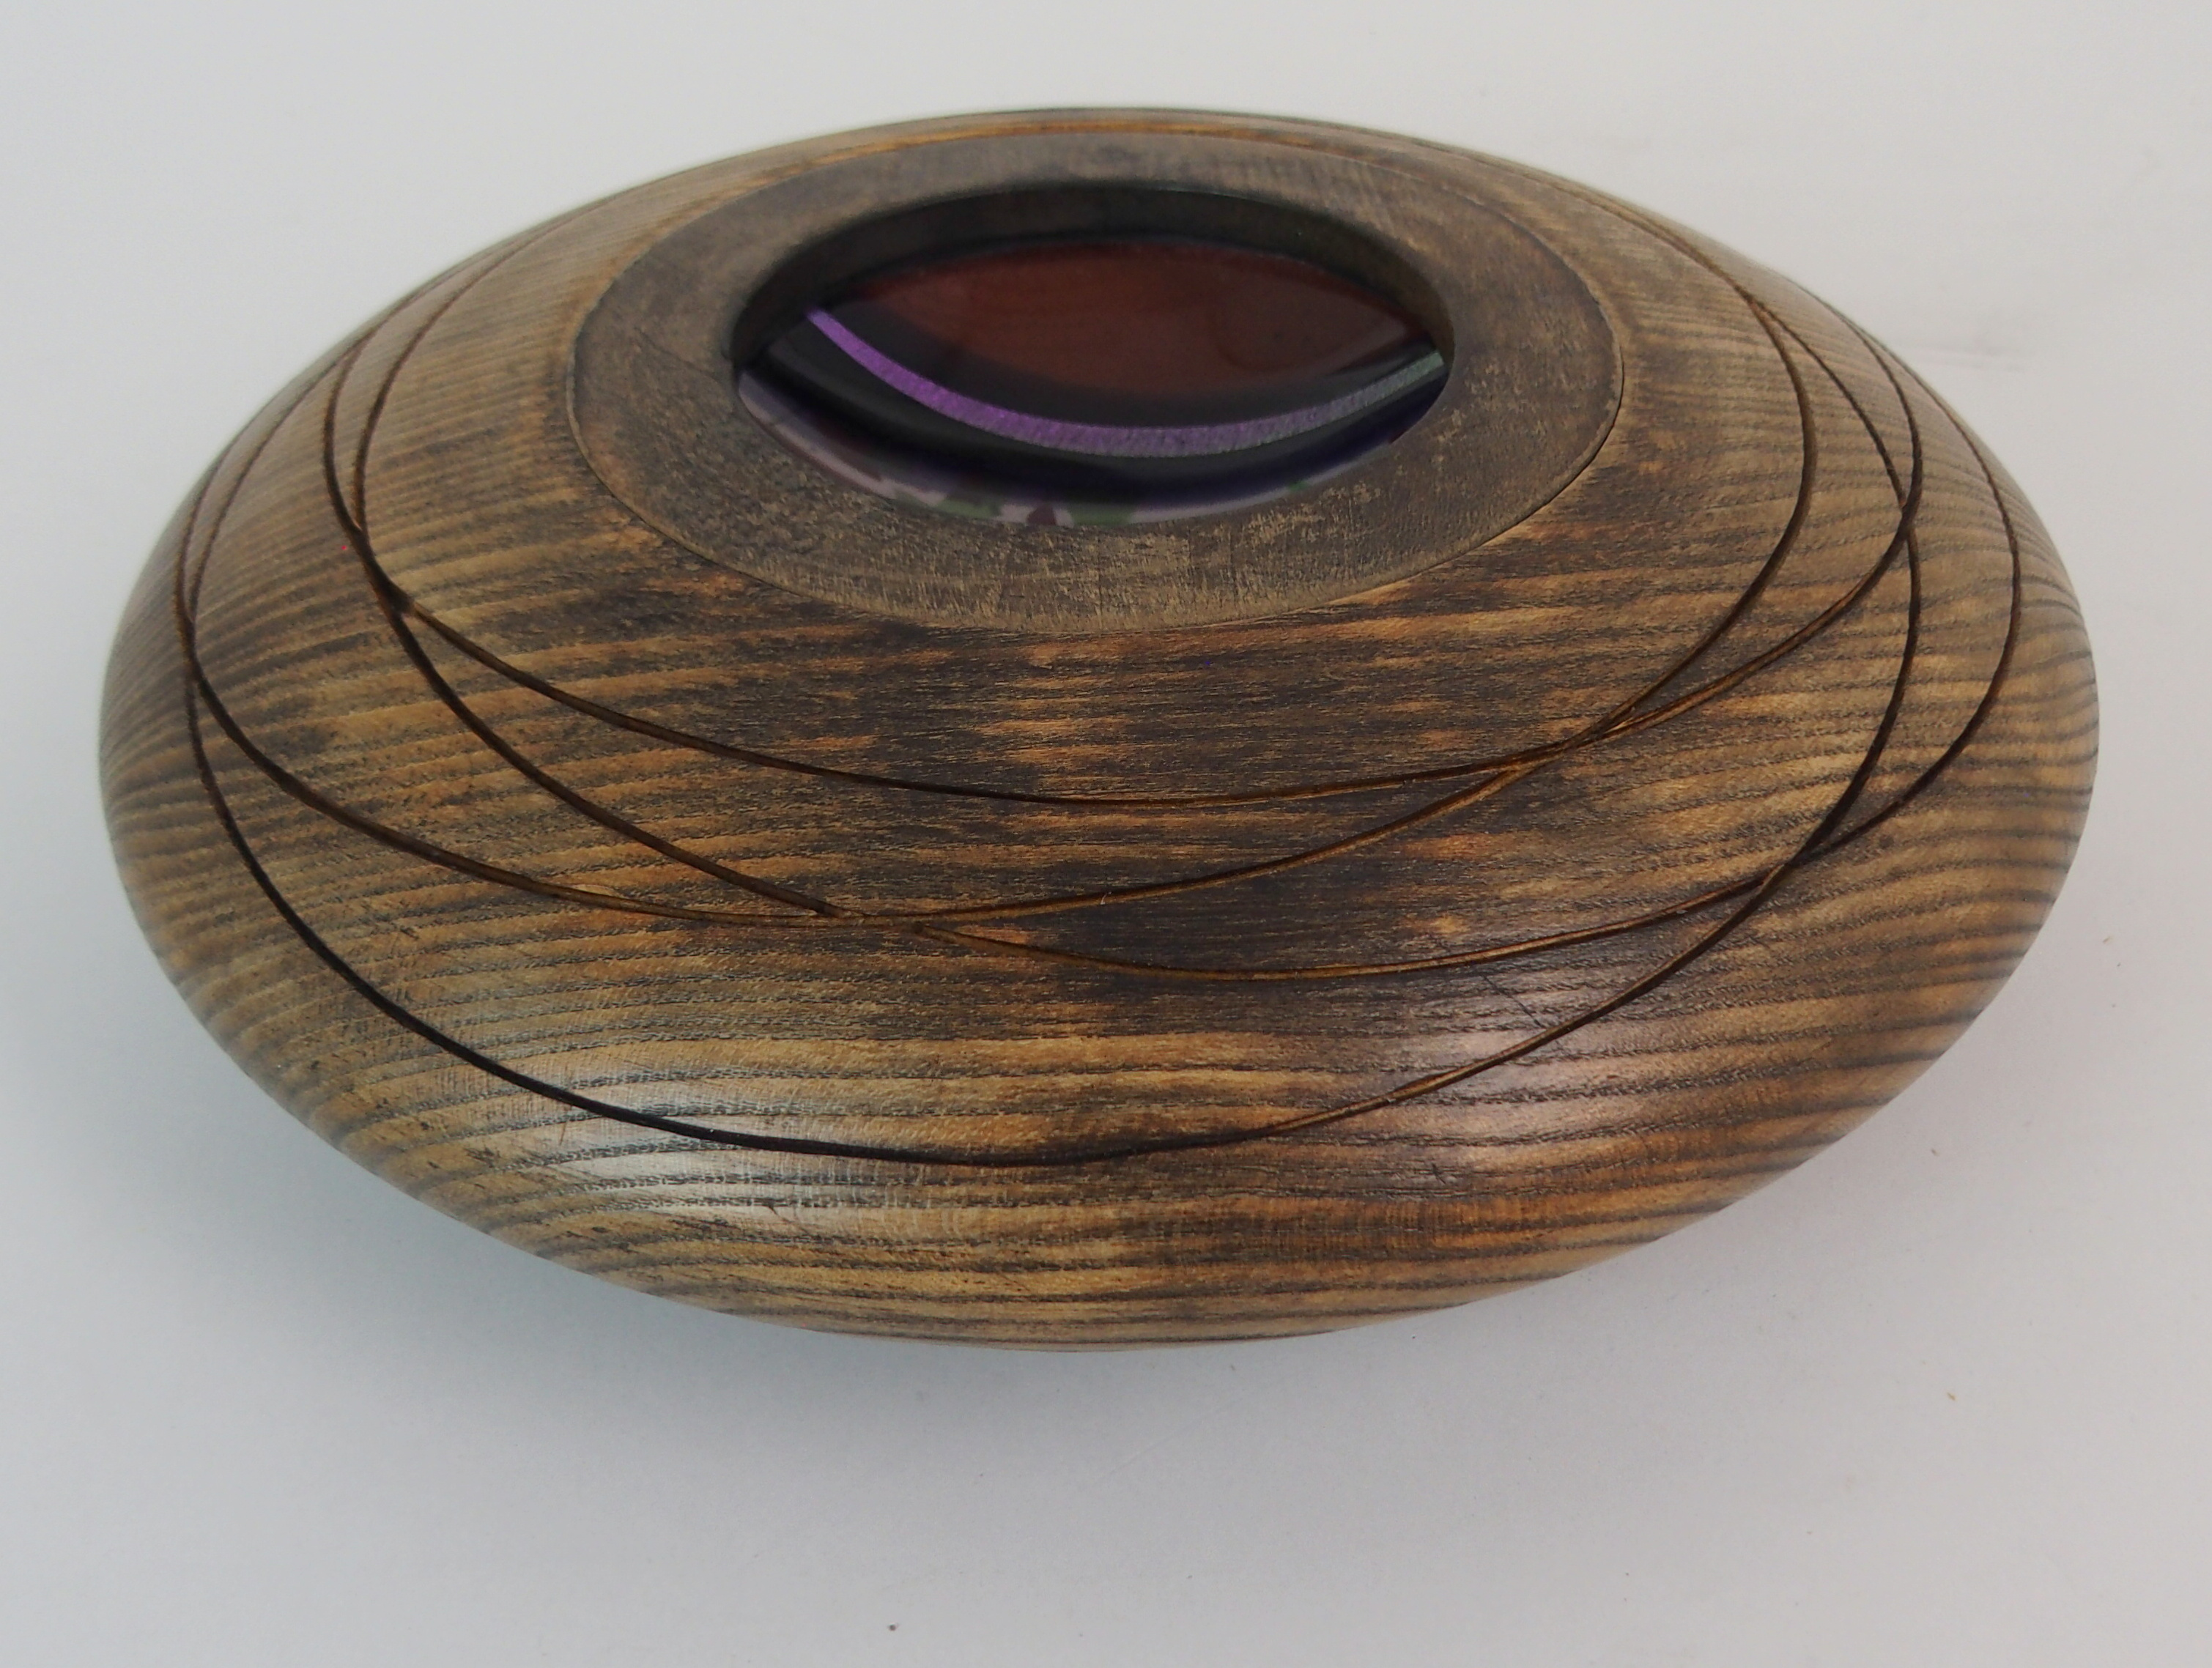 A SCOTT IRVINE WOOD AND FUSED GLASS CENTERPIECE BOWL 30cm diameter Condition Report: Available - Image 2 of 5